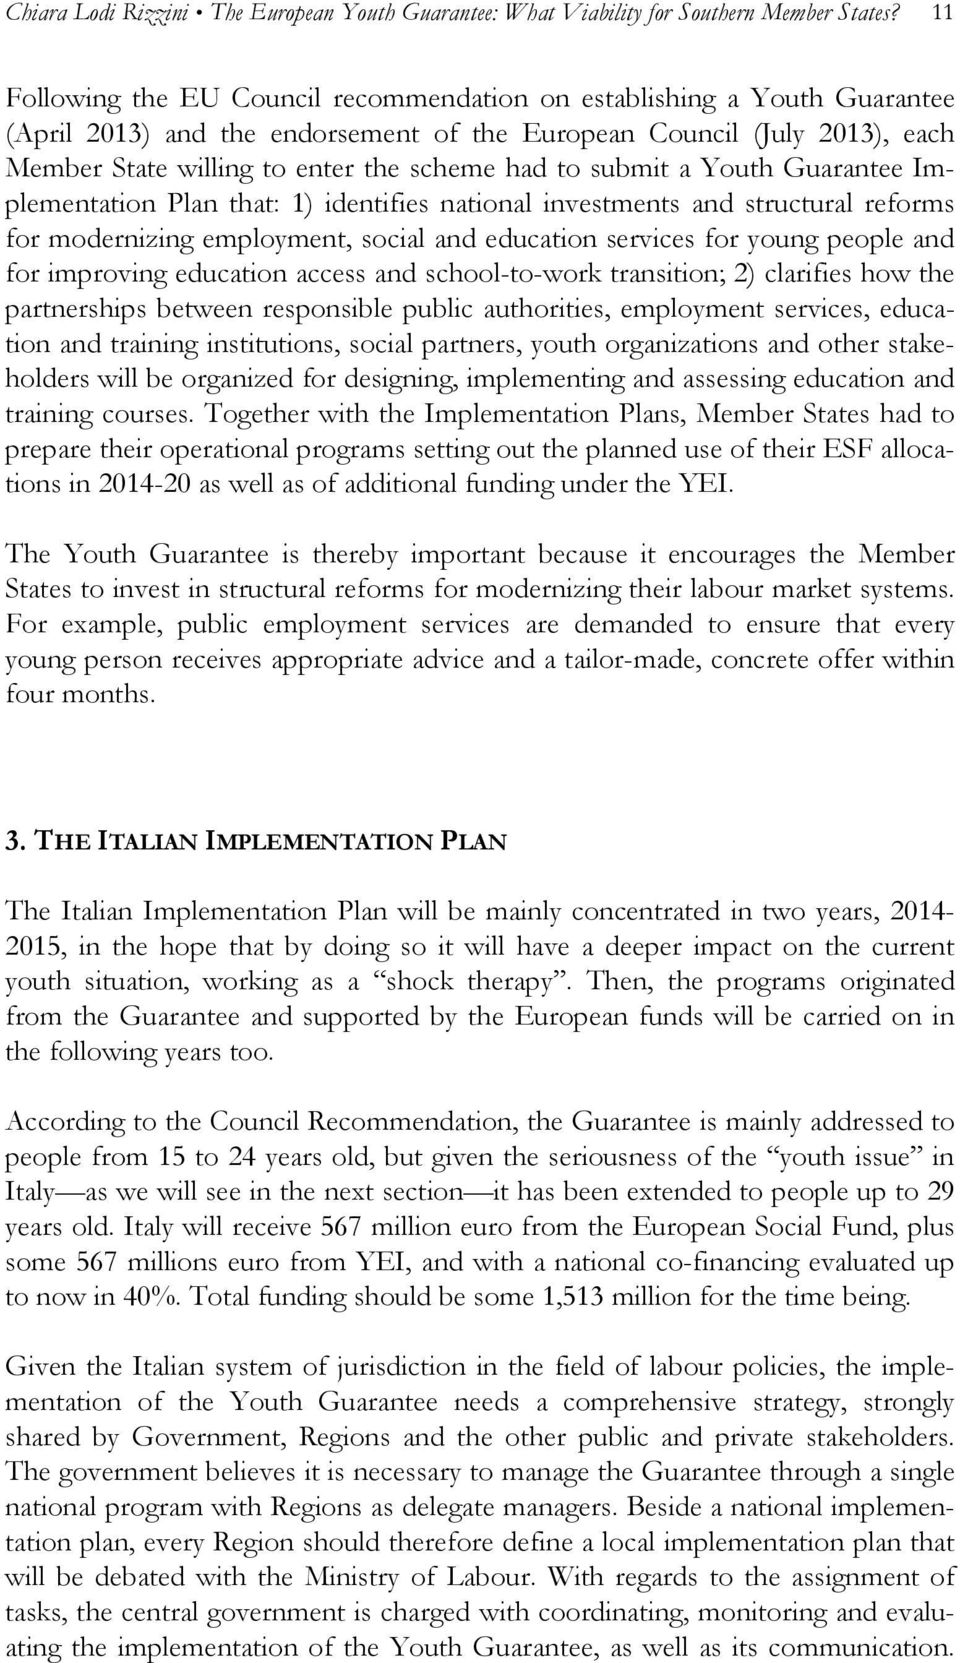 submit a Youth Guarantee Implementation Plan that: 1) identifies national investments and structural reforms for modernizing employment, social and education services for young people and for